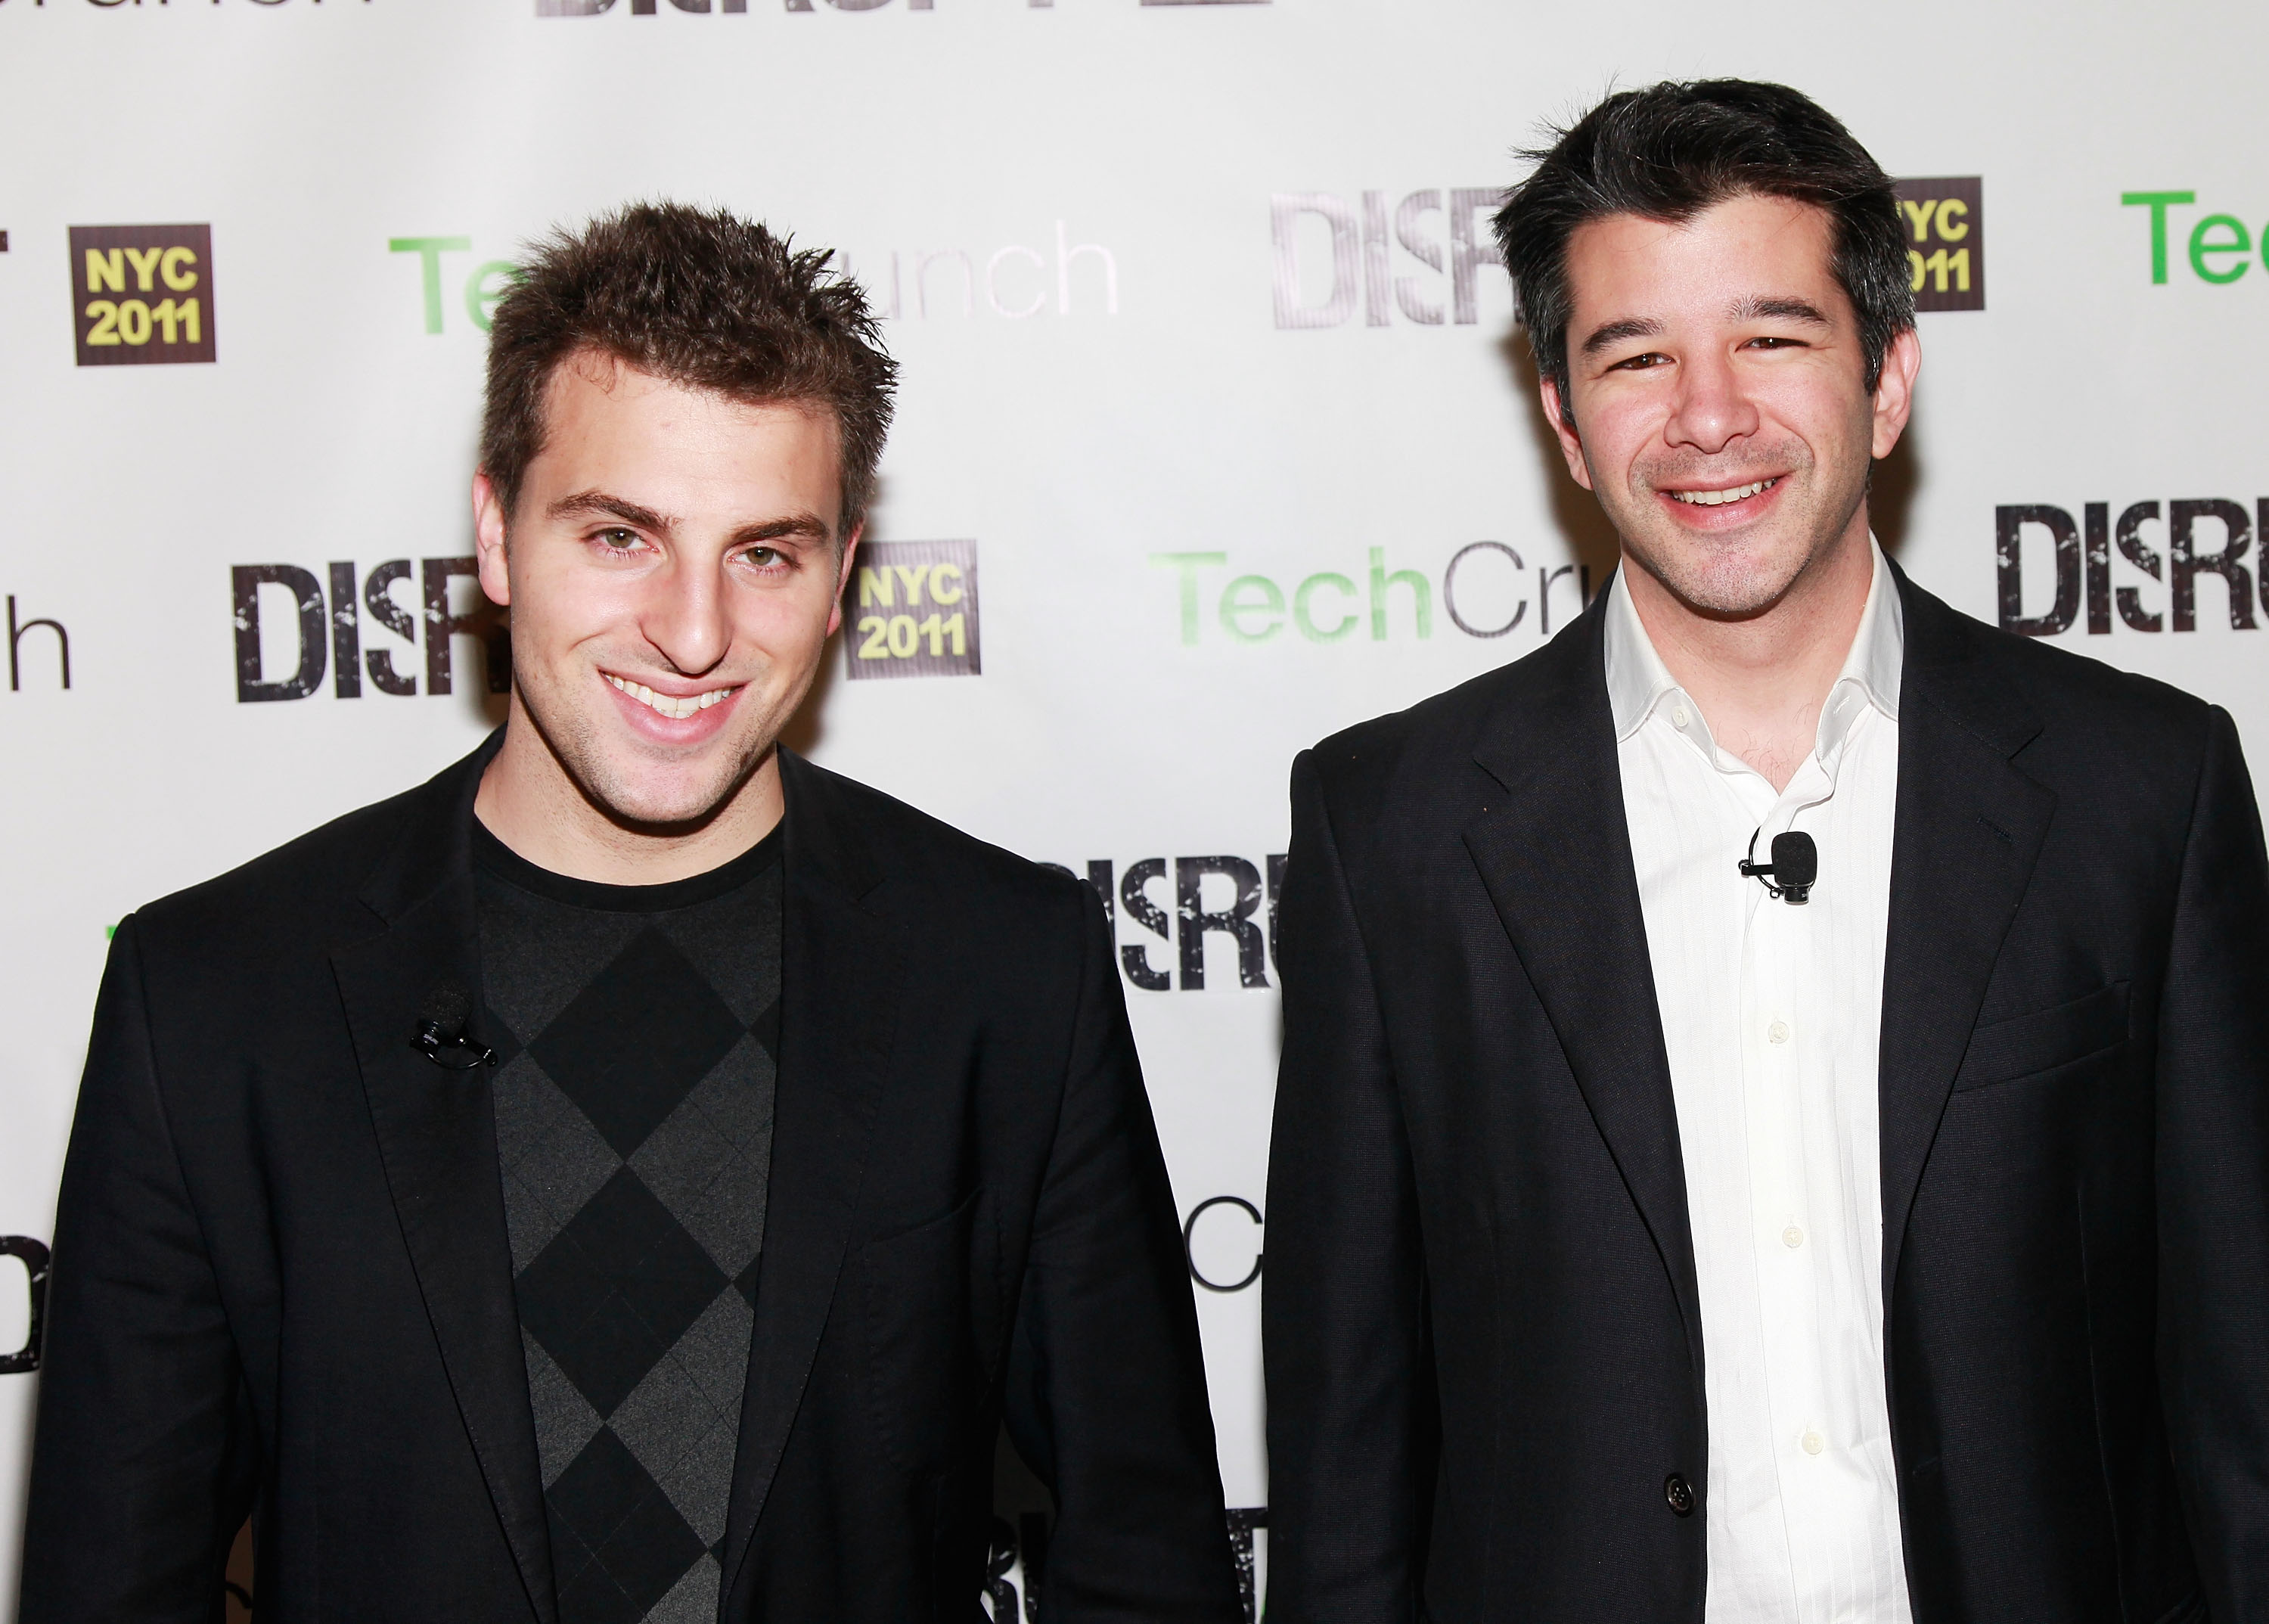 Brian Chesky and Travis Kalanick pose together at TechCrunch Disrupt in New York City in 2011.